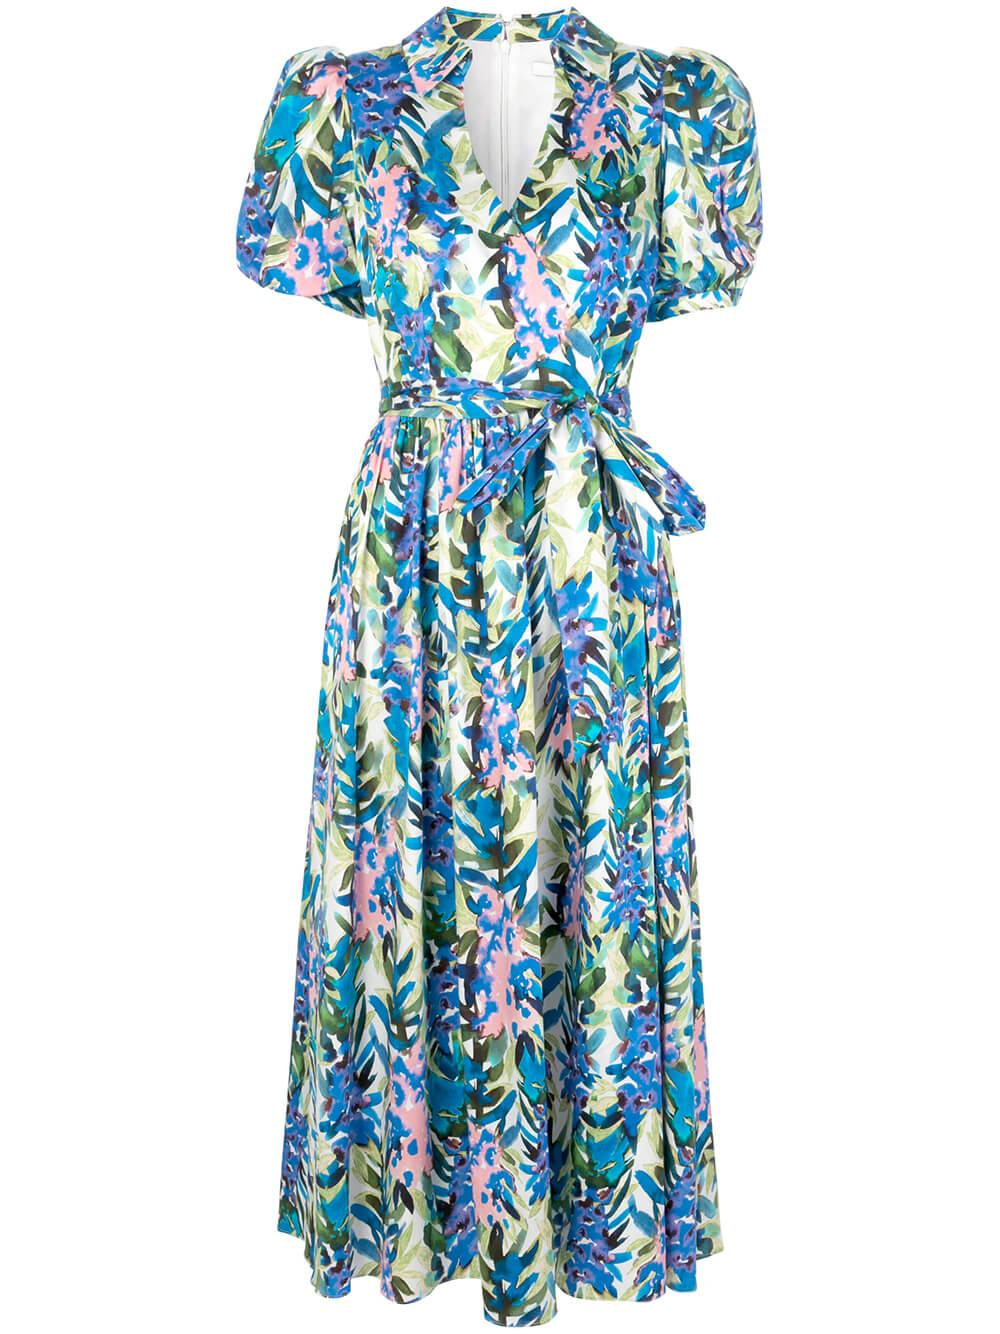 Stripe Floral Puff Sleeve Midi Dress Item # BSD4399